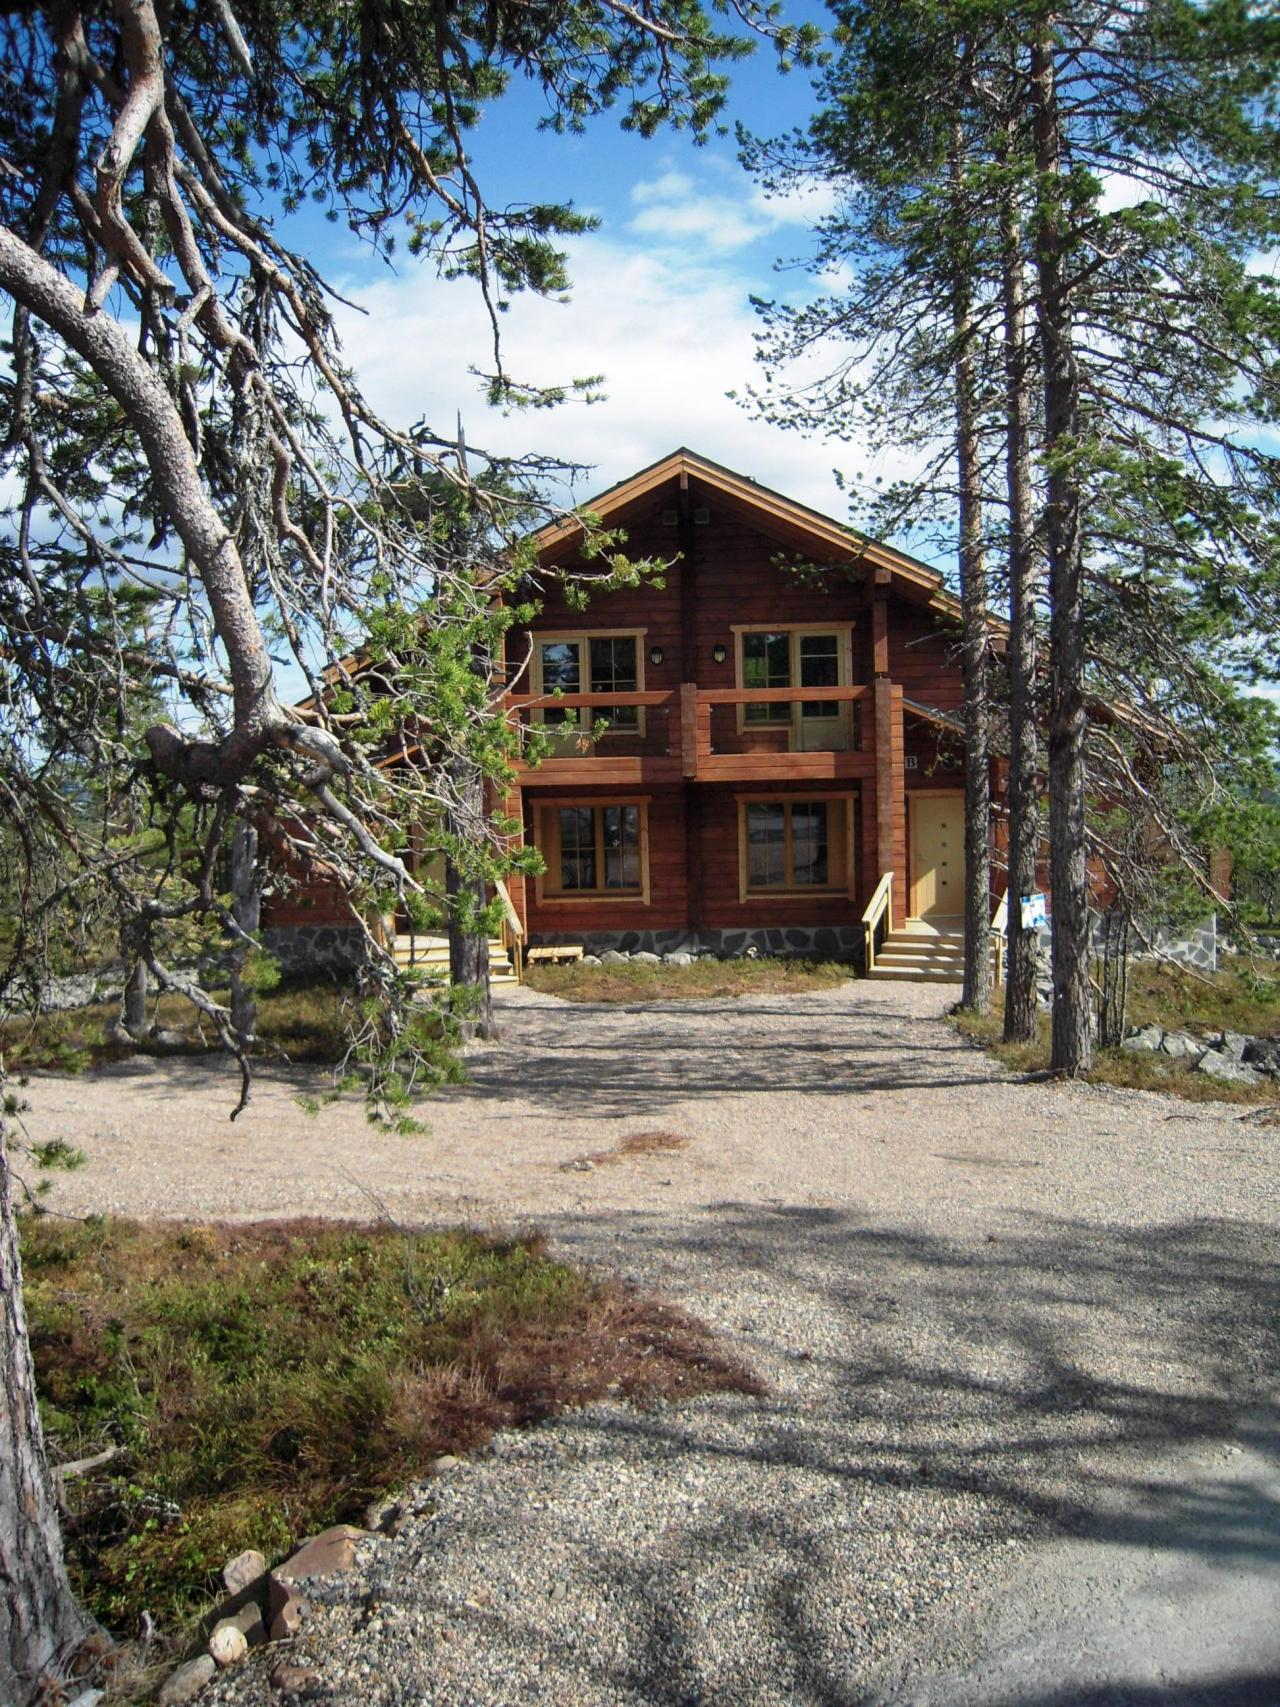 Marvelous photograph of Artichouse Utsuvaara Finland with #306C9B color and 1280x1707 pixels